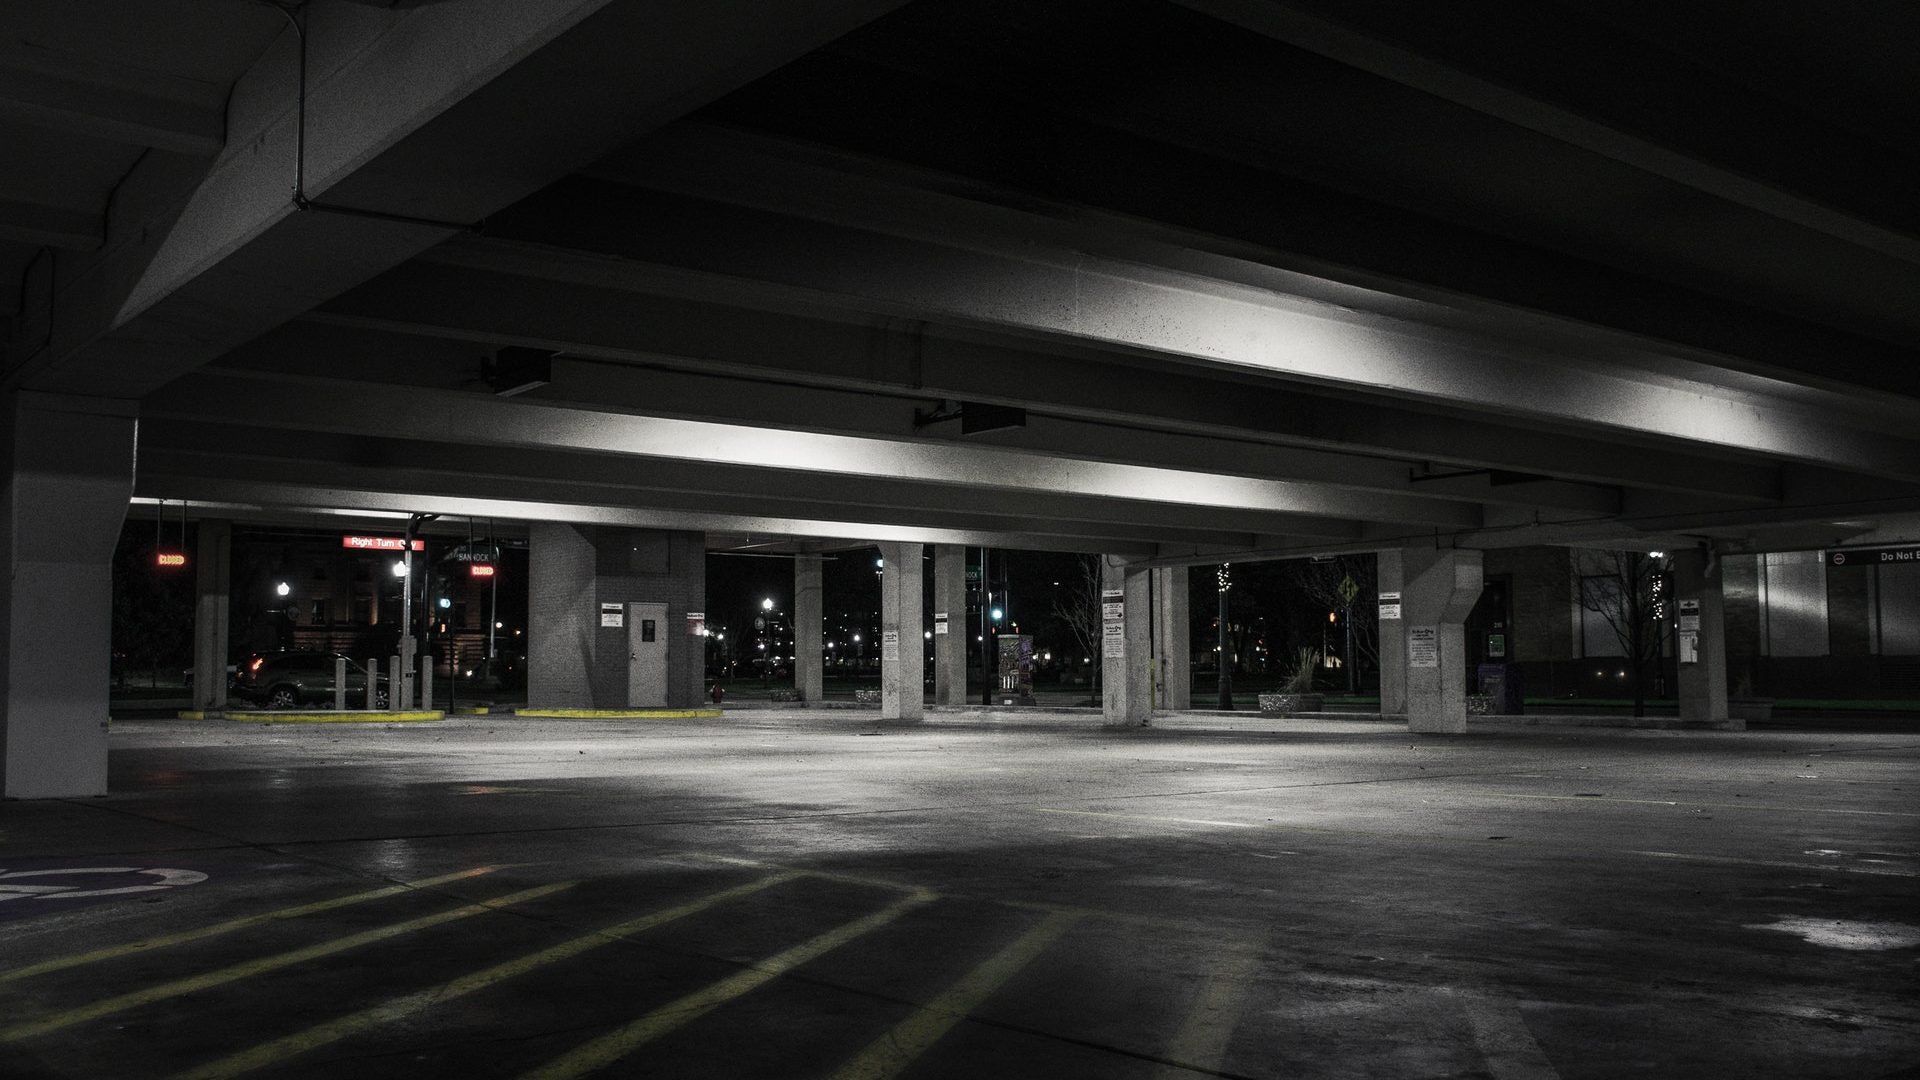 Car storage in Toronto: Where to find secure and affordable indoor vehicle storage